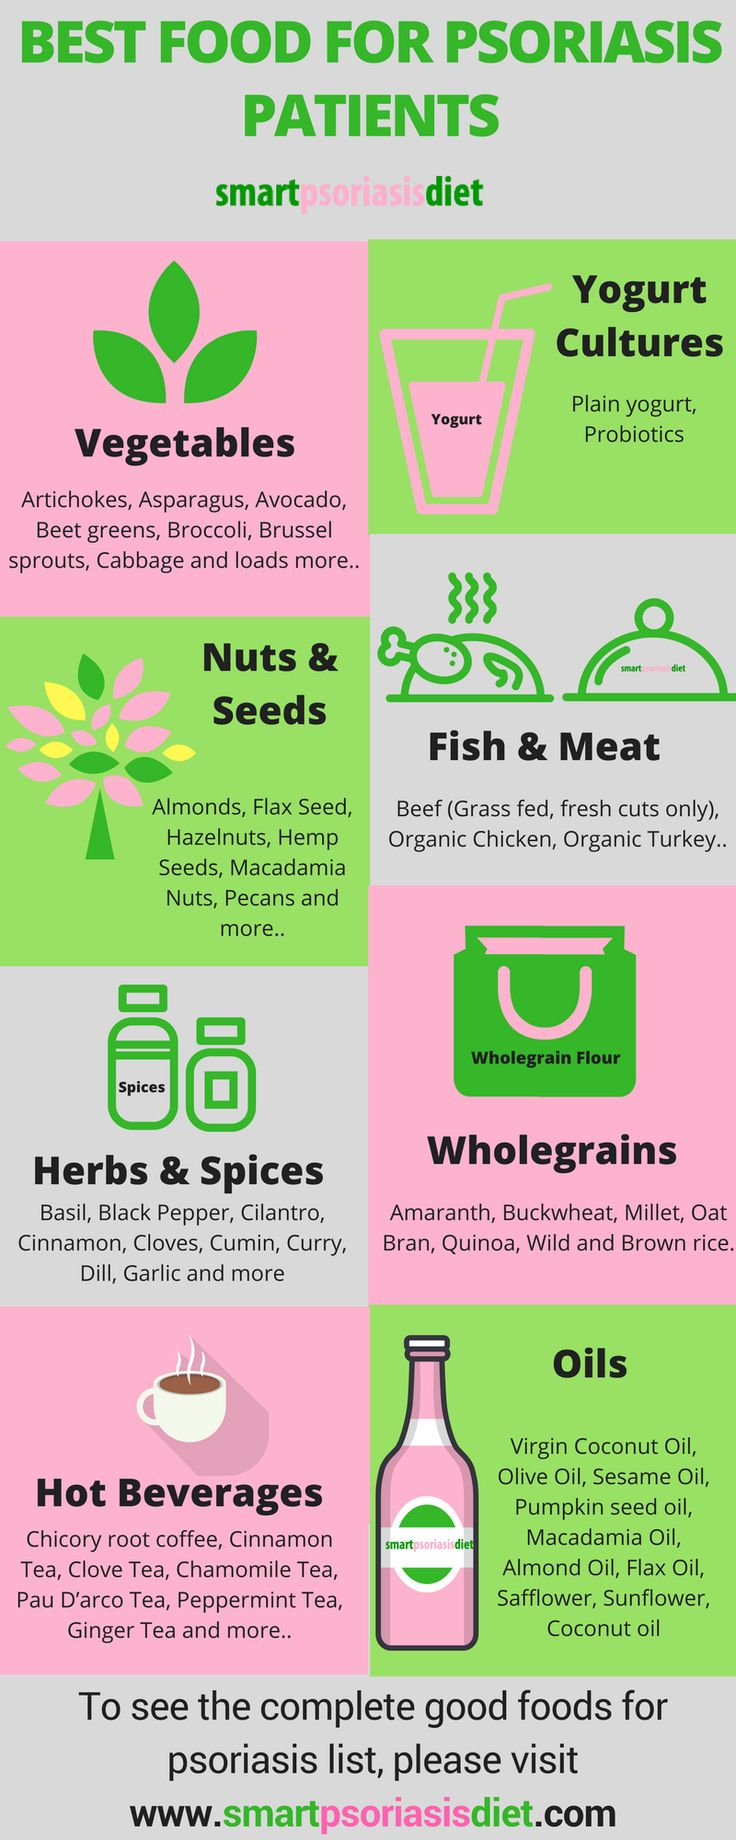 This is a summary of all the best foods for psoriasis sufferers. Visit smartpsoriasisdiet.com for the complete list. A smart psoriasis diet doesn't have to be that hard, but it does mean some minor changes to your current lifestyle. Thanks for reading!